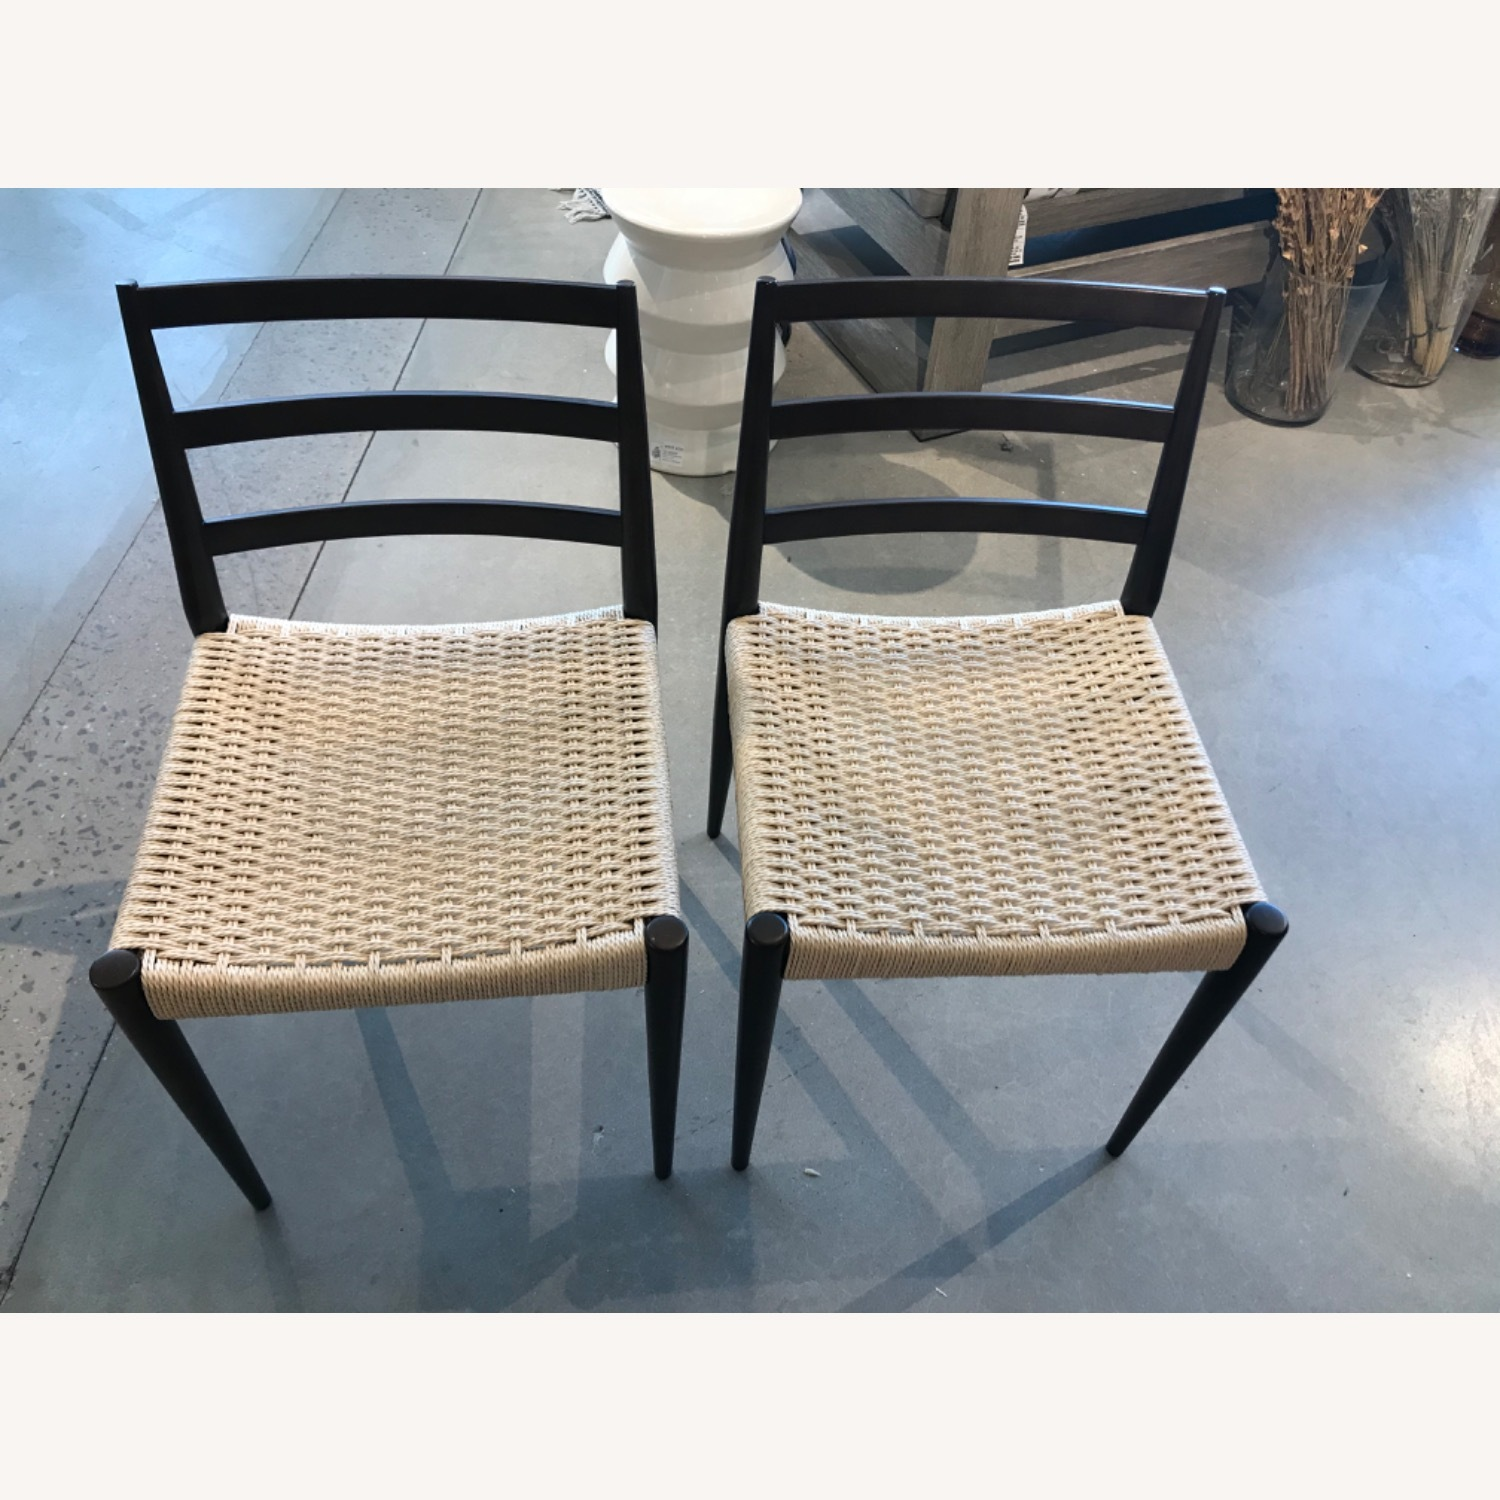 West Elm Holland Woven Dining Chair (Set of 2) - image-8